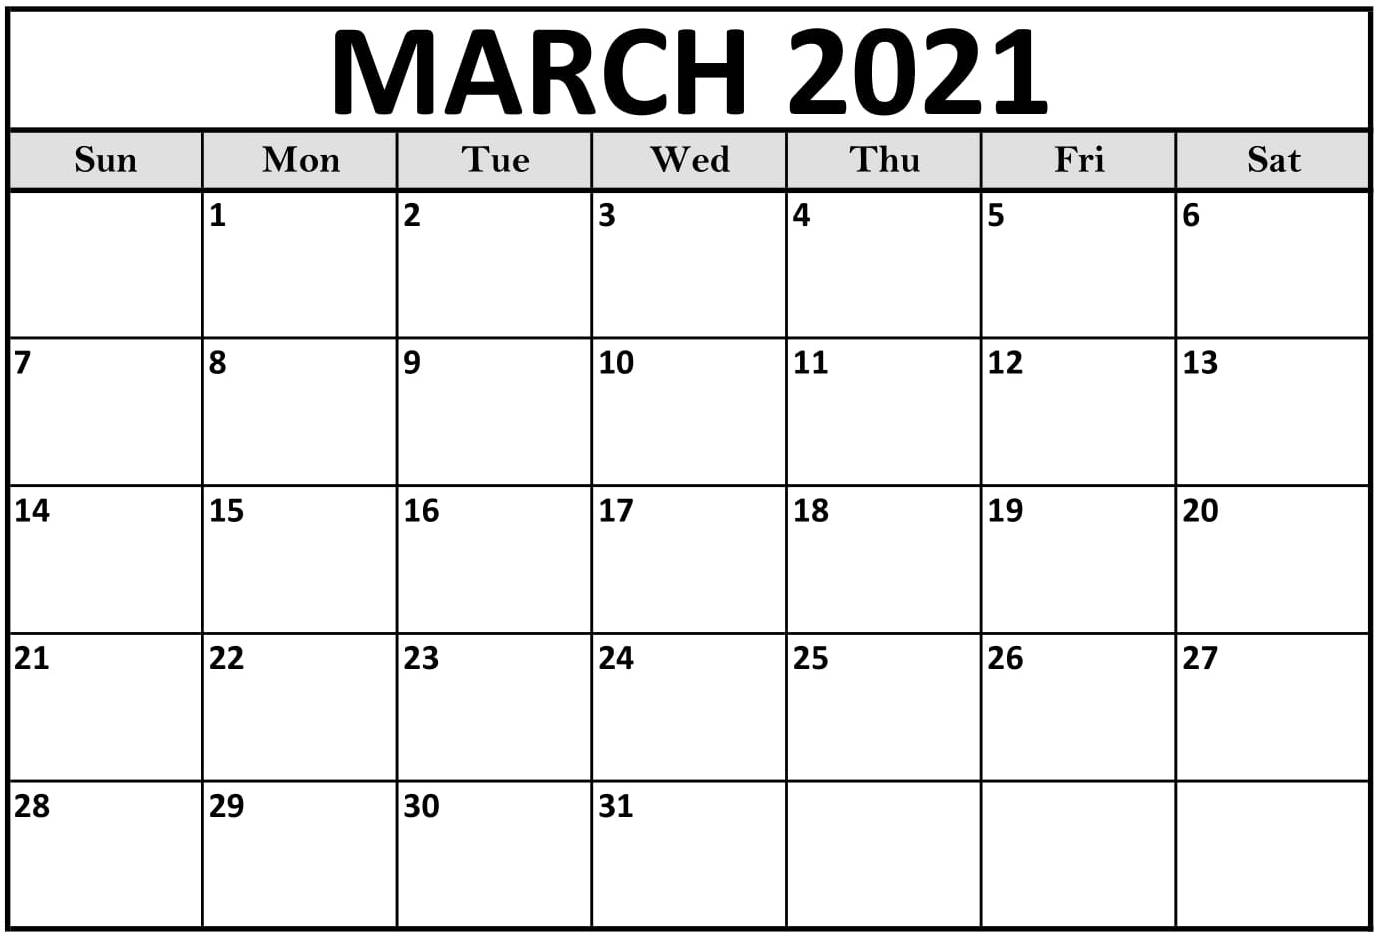 Print March 2021 Calendar Template Word Excel - Set Your